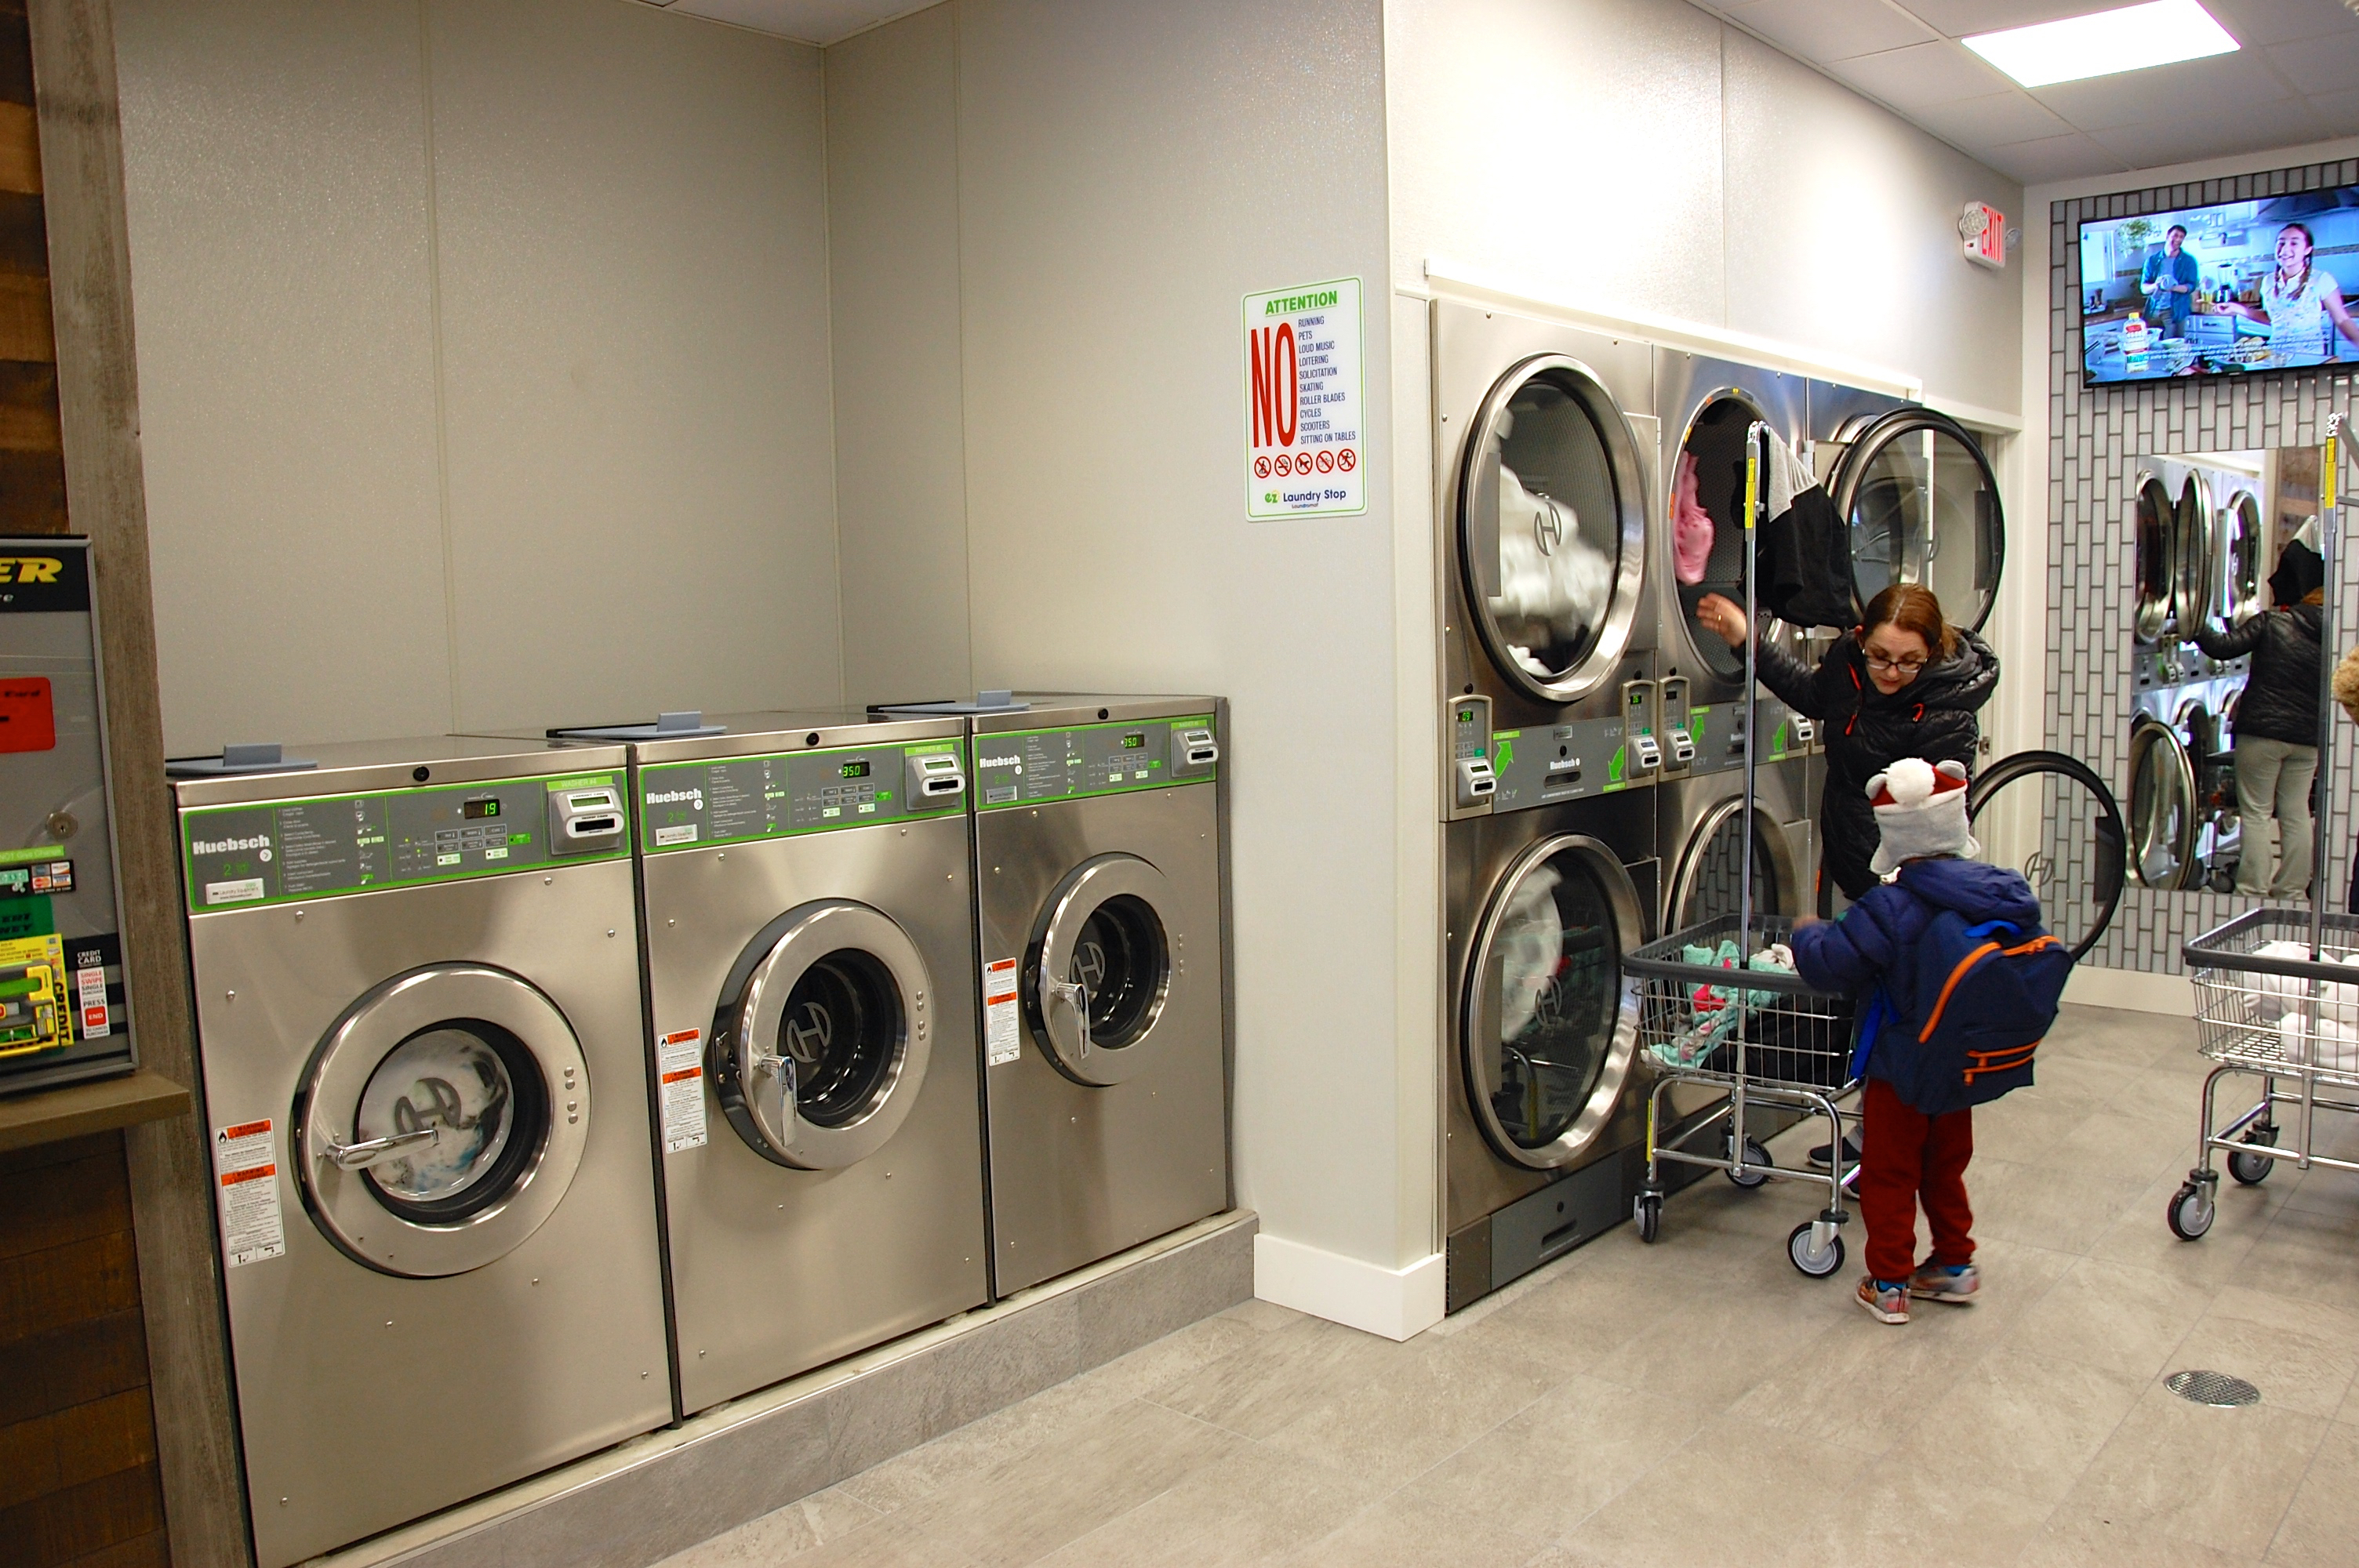 The professional designed Laundromat maximizes the number of machines & customer space. Thumbnail